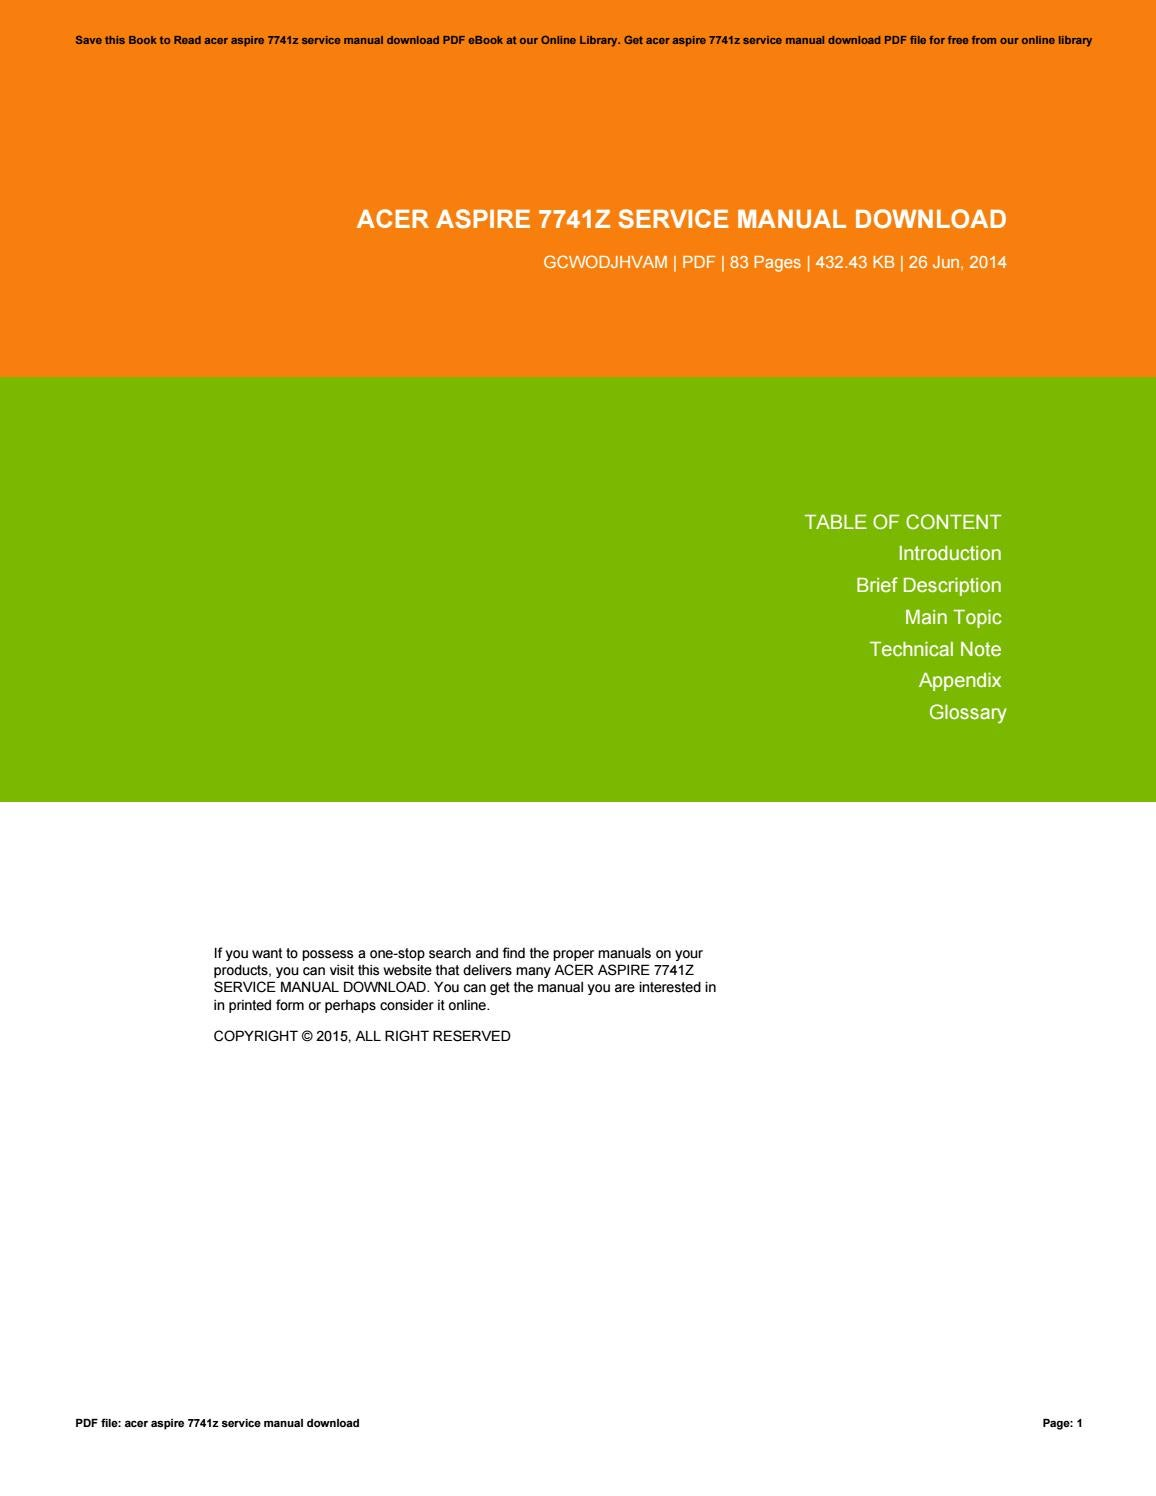 2015 hd serice manual repair manual pdf download array acer aspire 7741z service manual download by janicecheng4155 issuu rh issuu fandeluxe Gallery